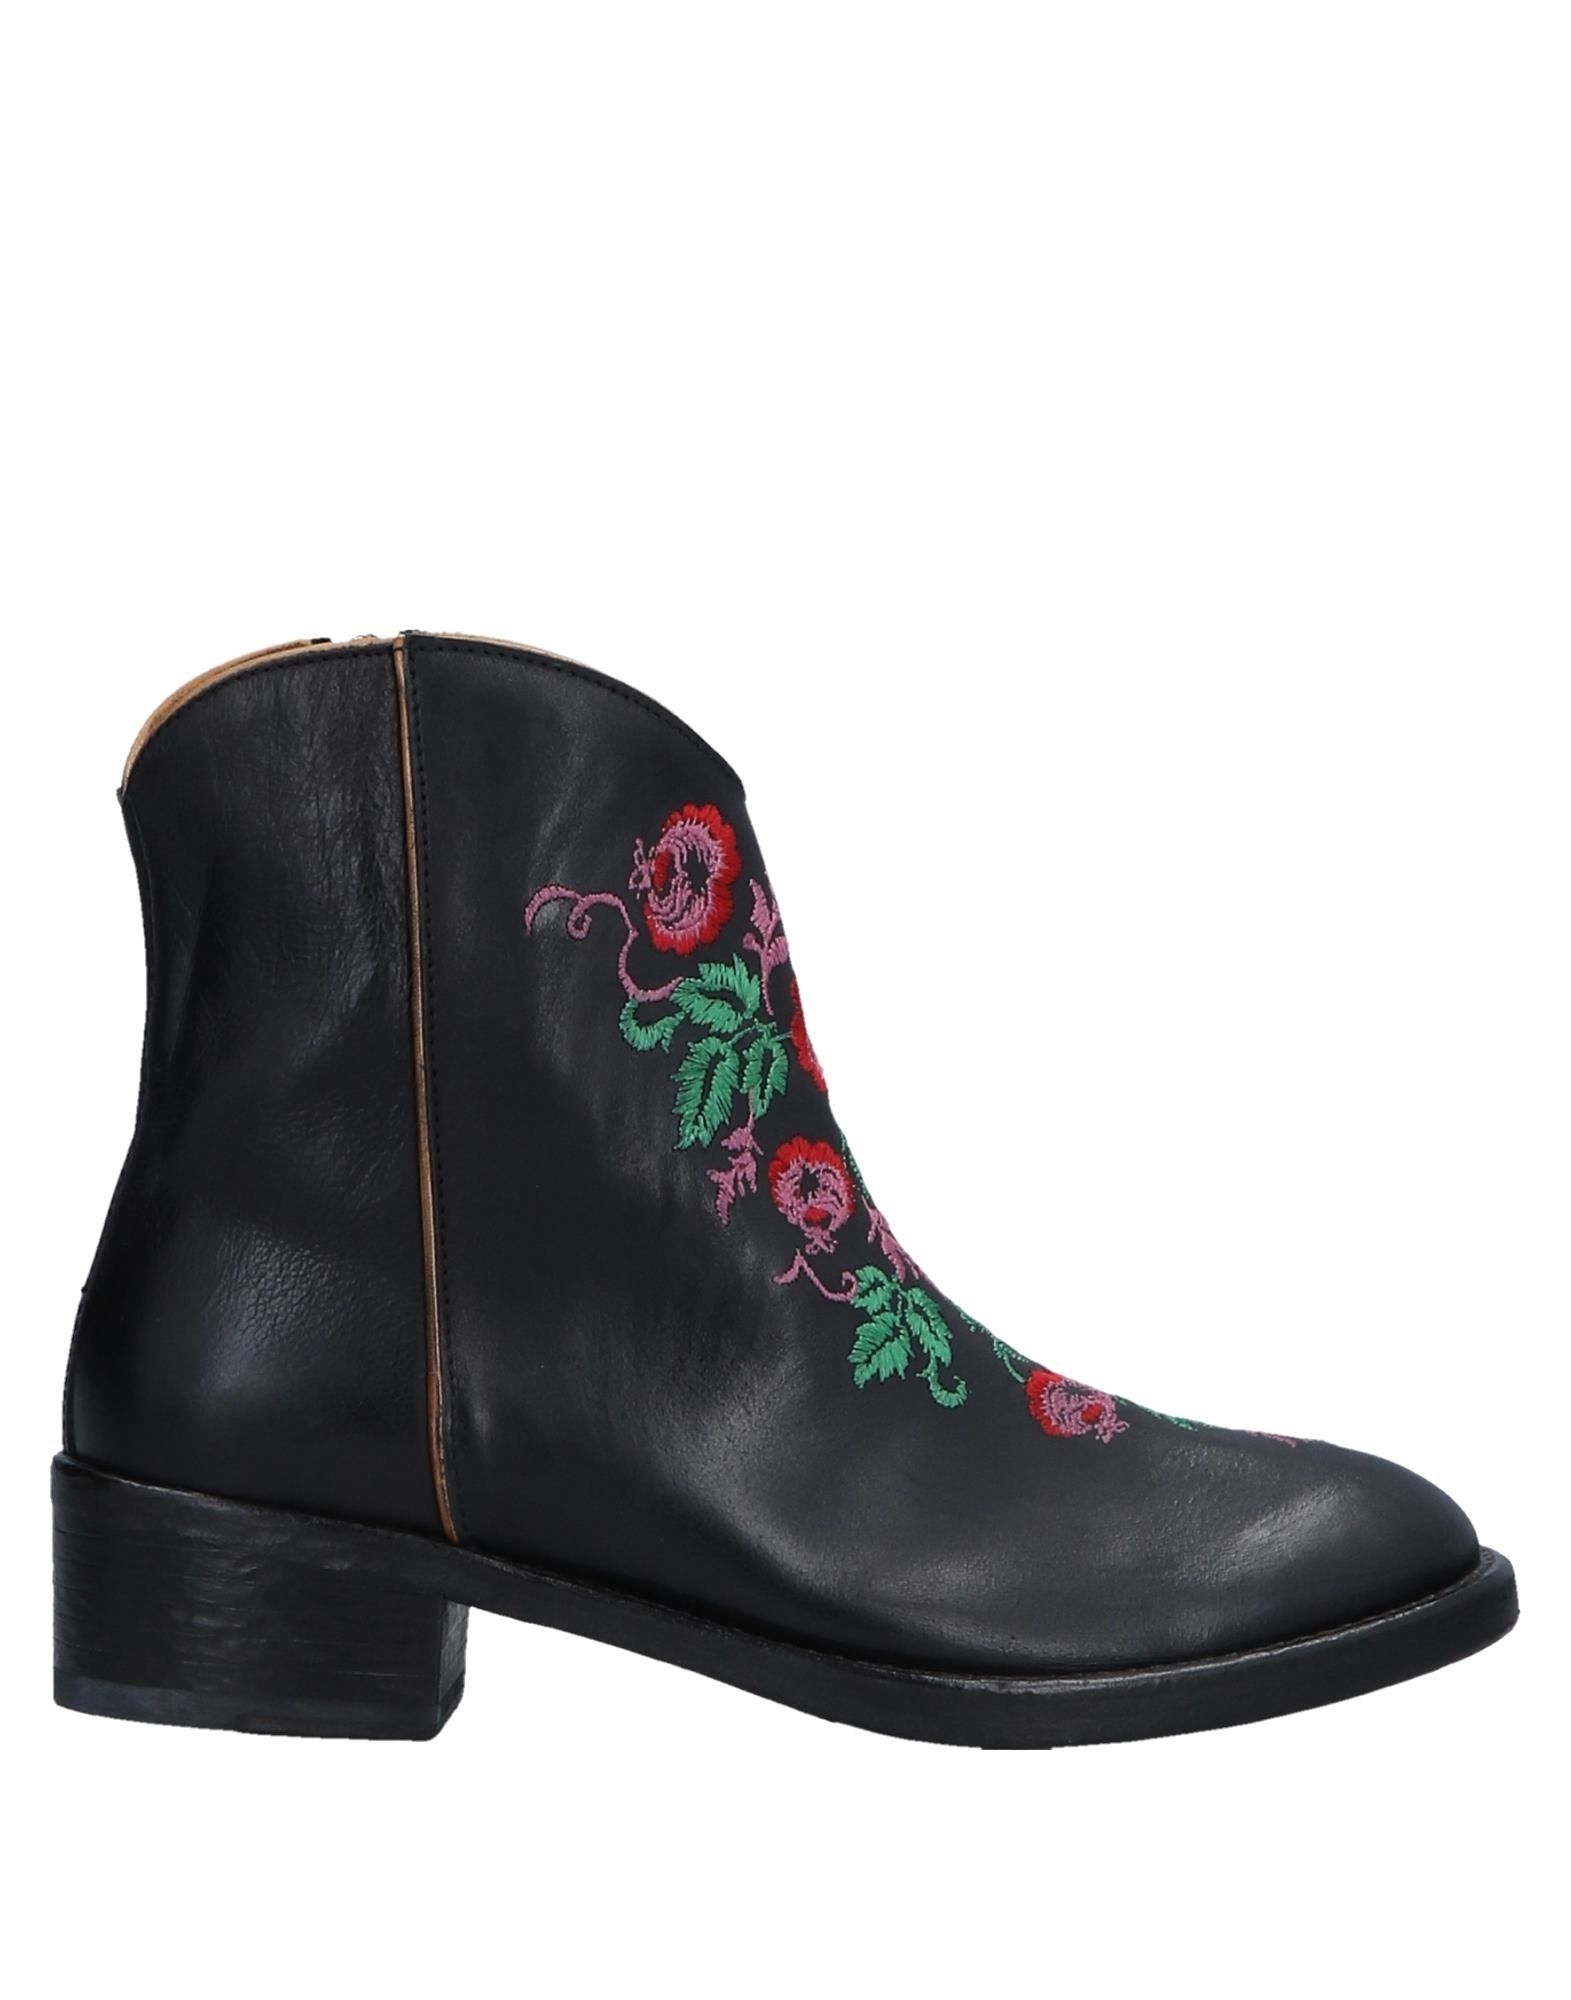 SEBOY'S Ankle Boot in Black